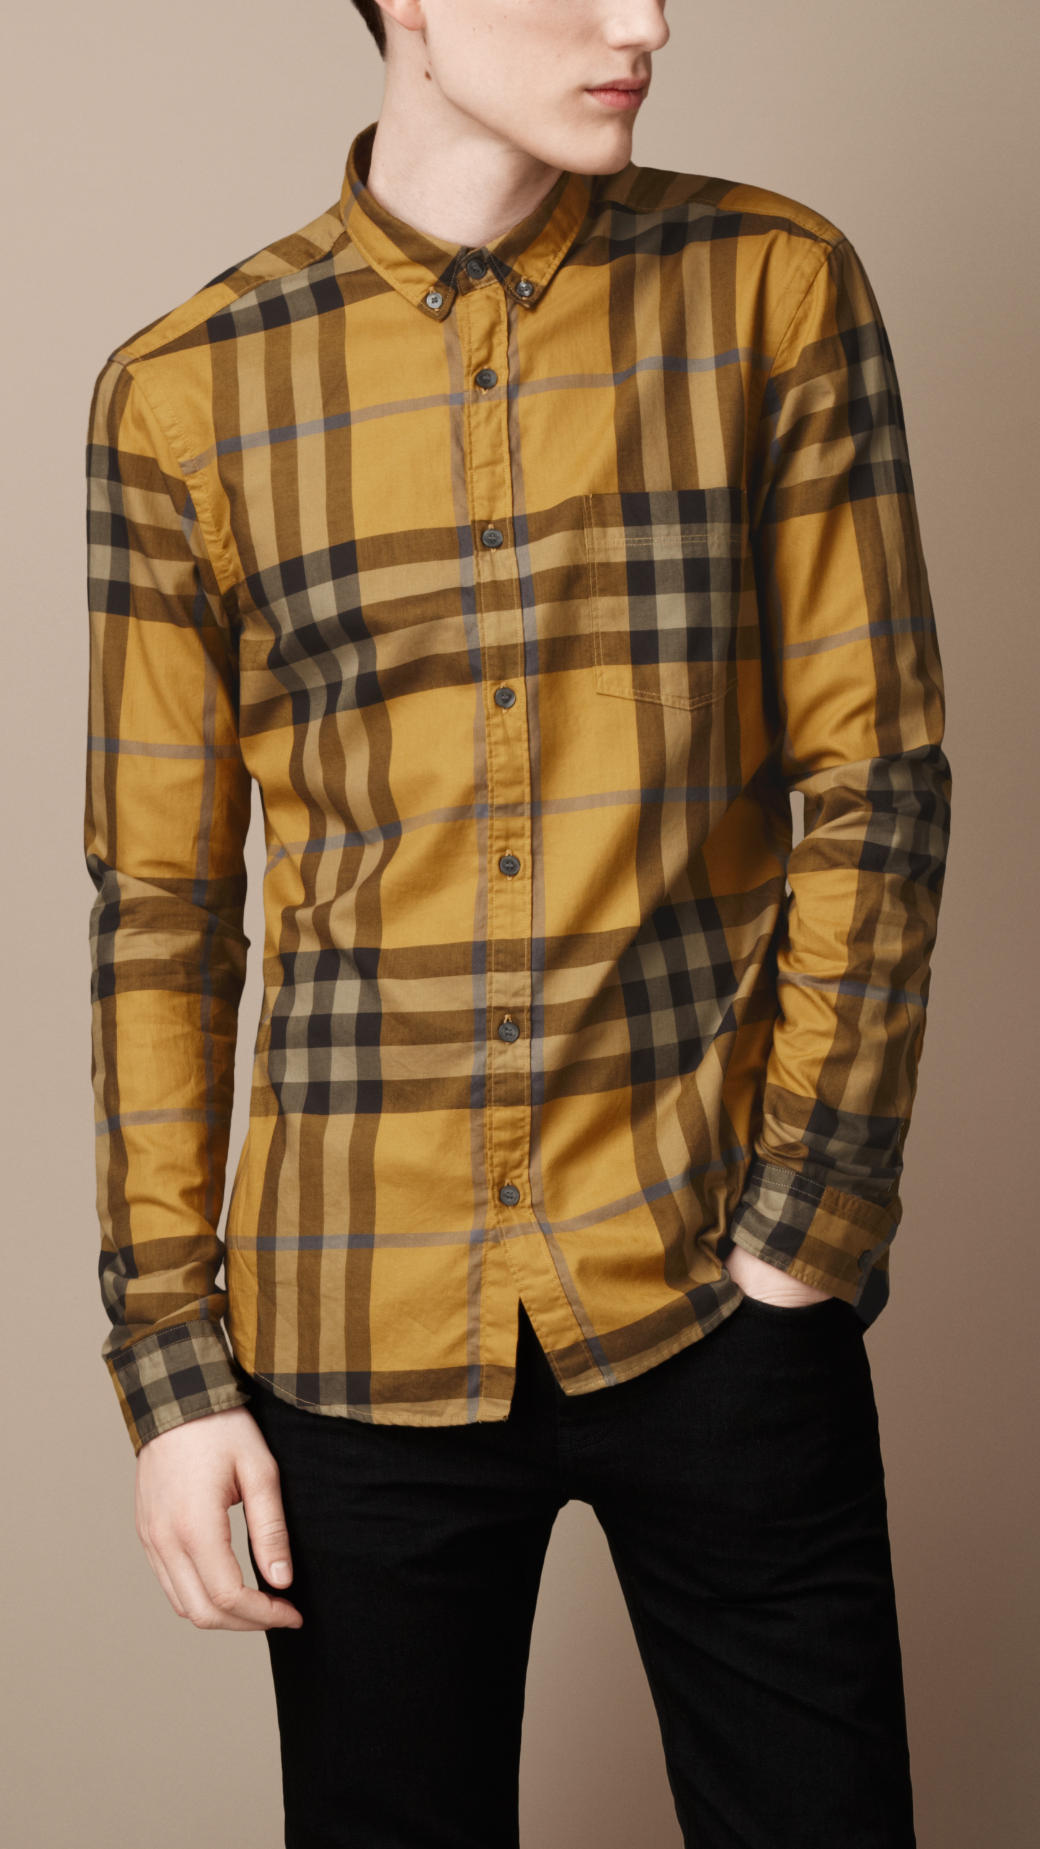 Lyst - Burberry Brit Exploded Check Cotton Shirt in Yellow for Men 2d82fd99ce